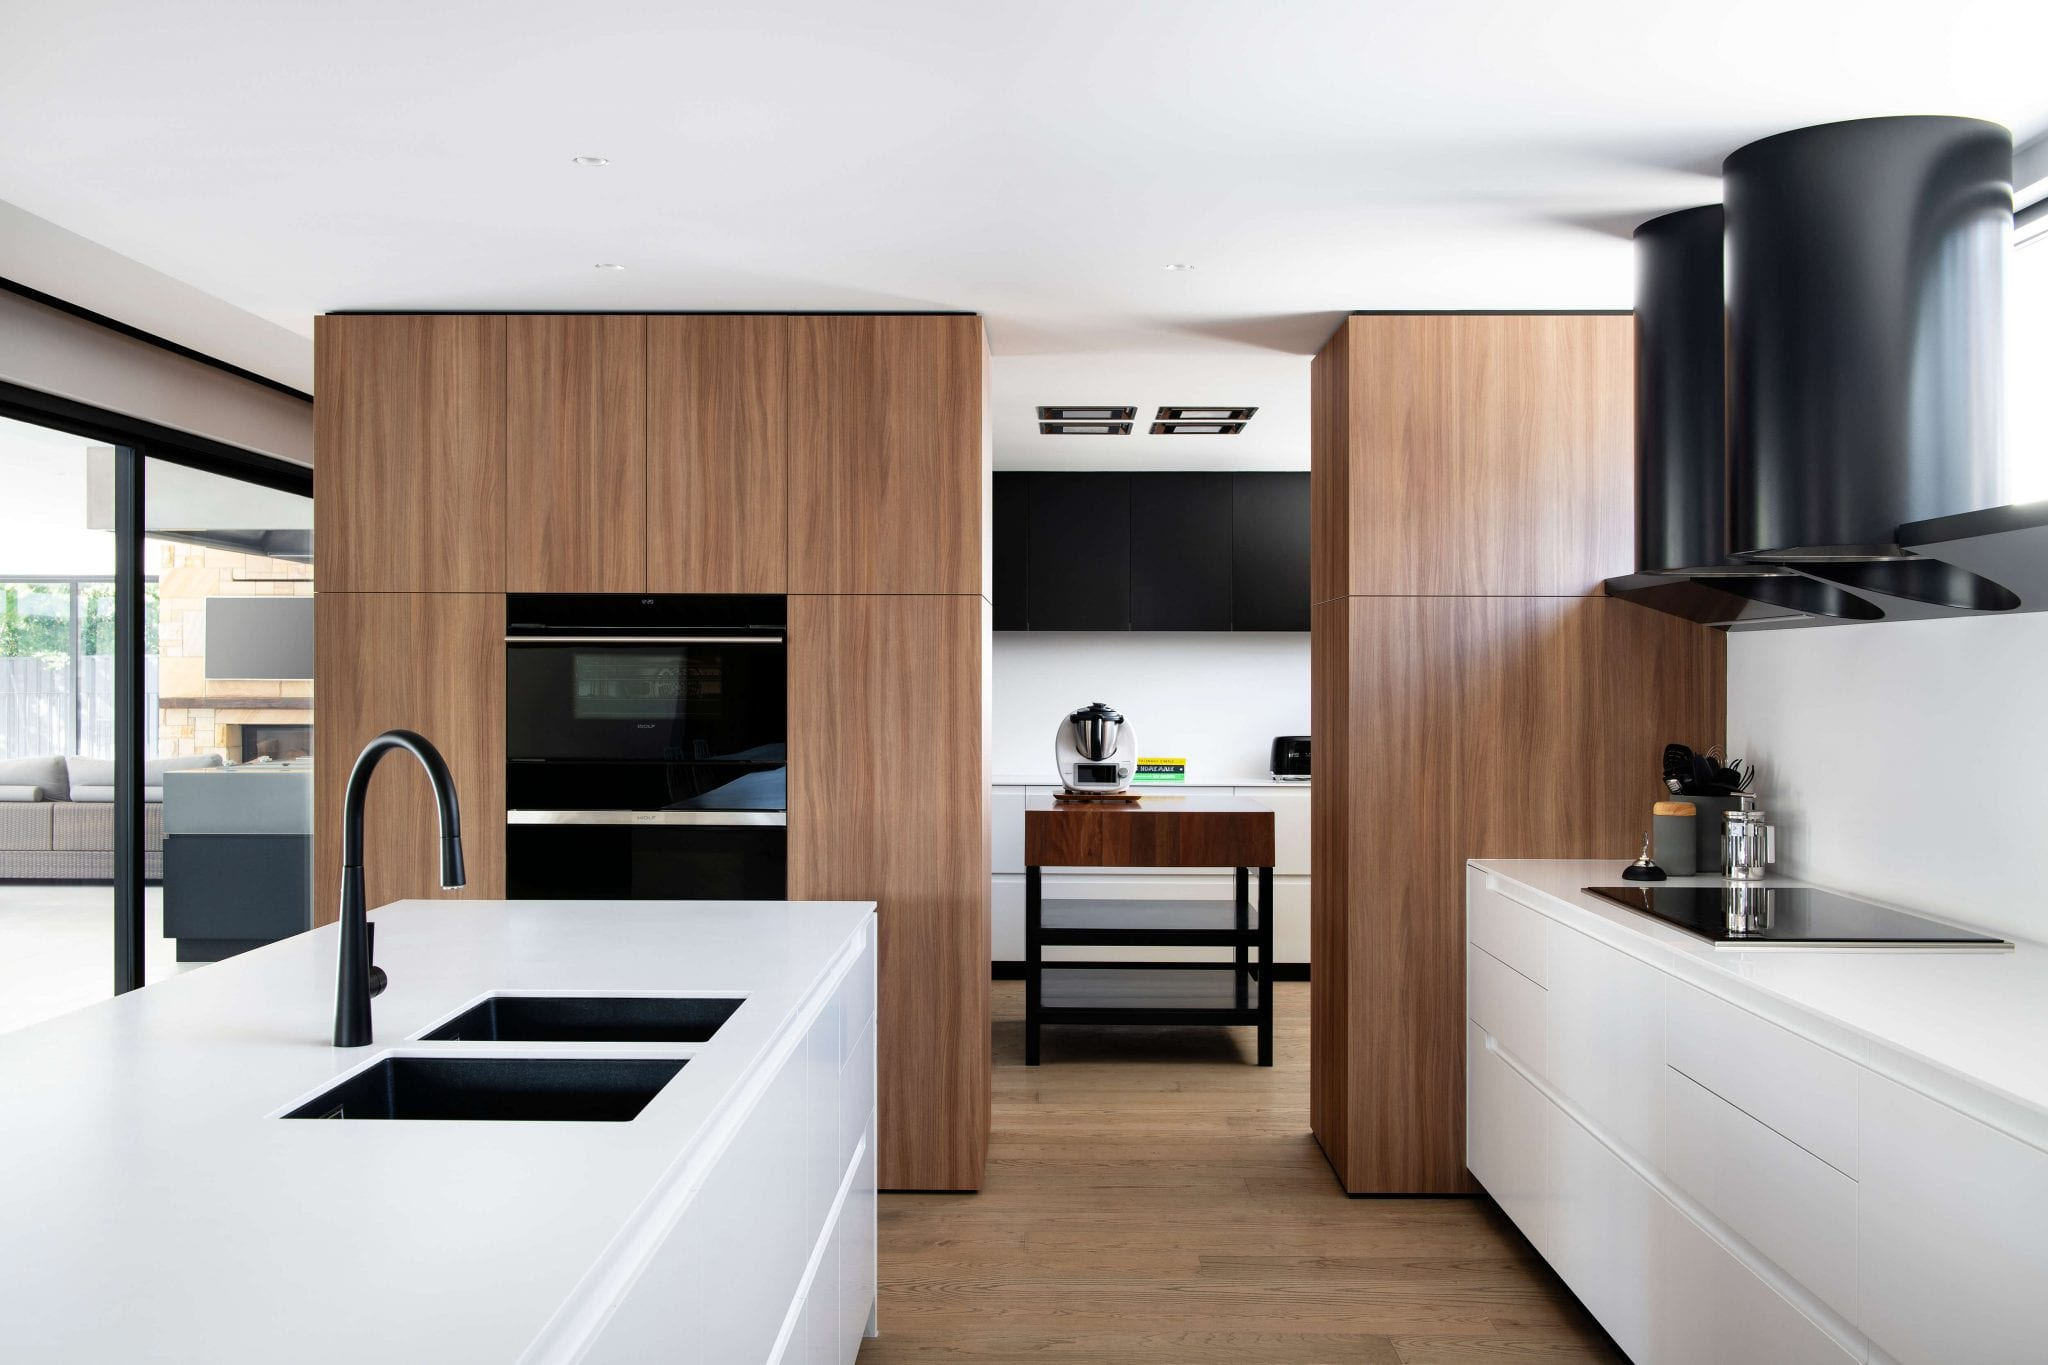 Kitchen designed by Simona Castagna (Minosa)